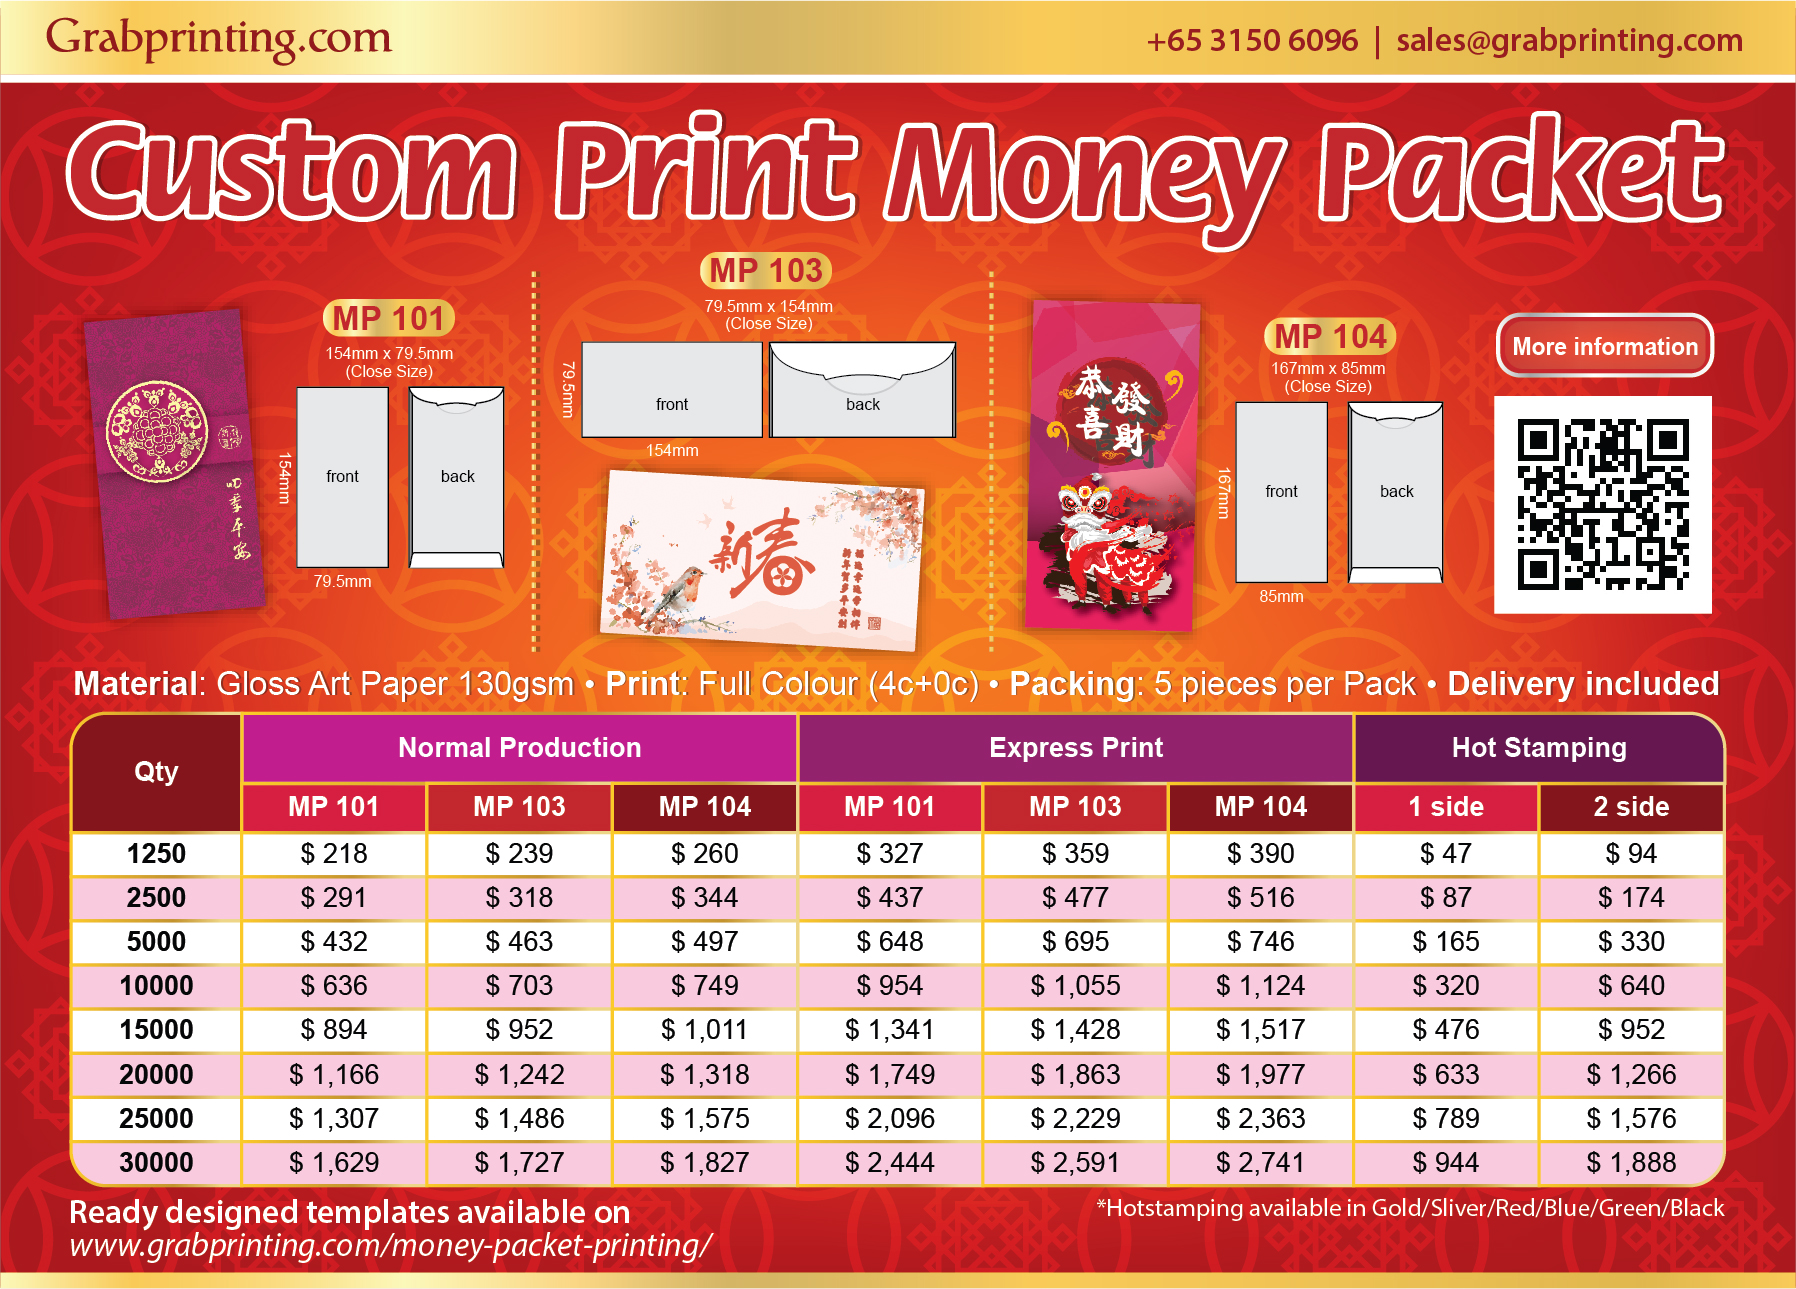 printing Home grabprinting red packet promotion flyer 152mm 109mm visual 1